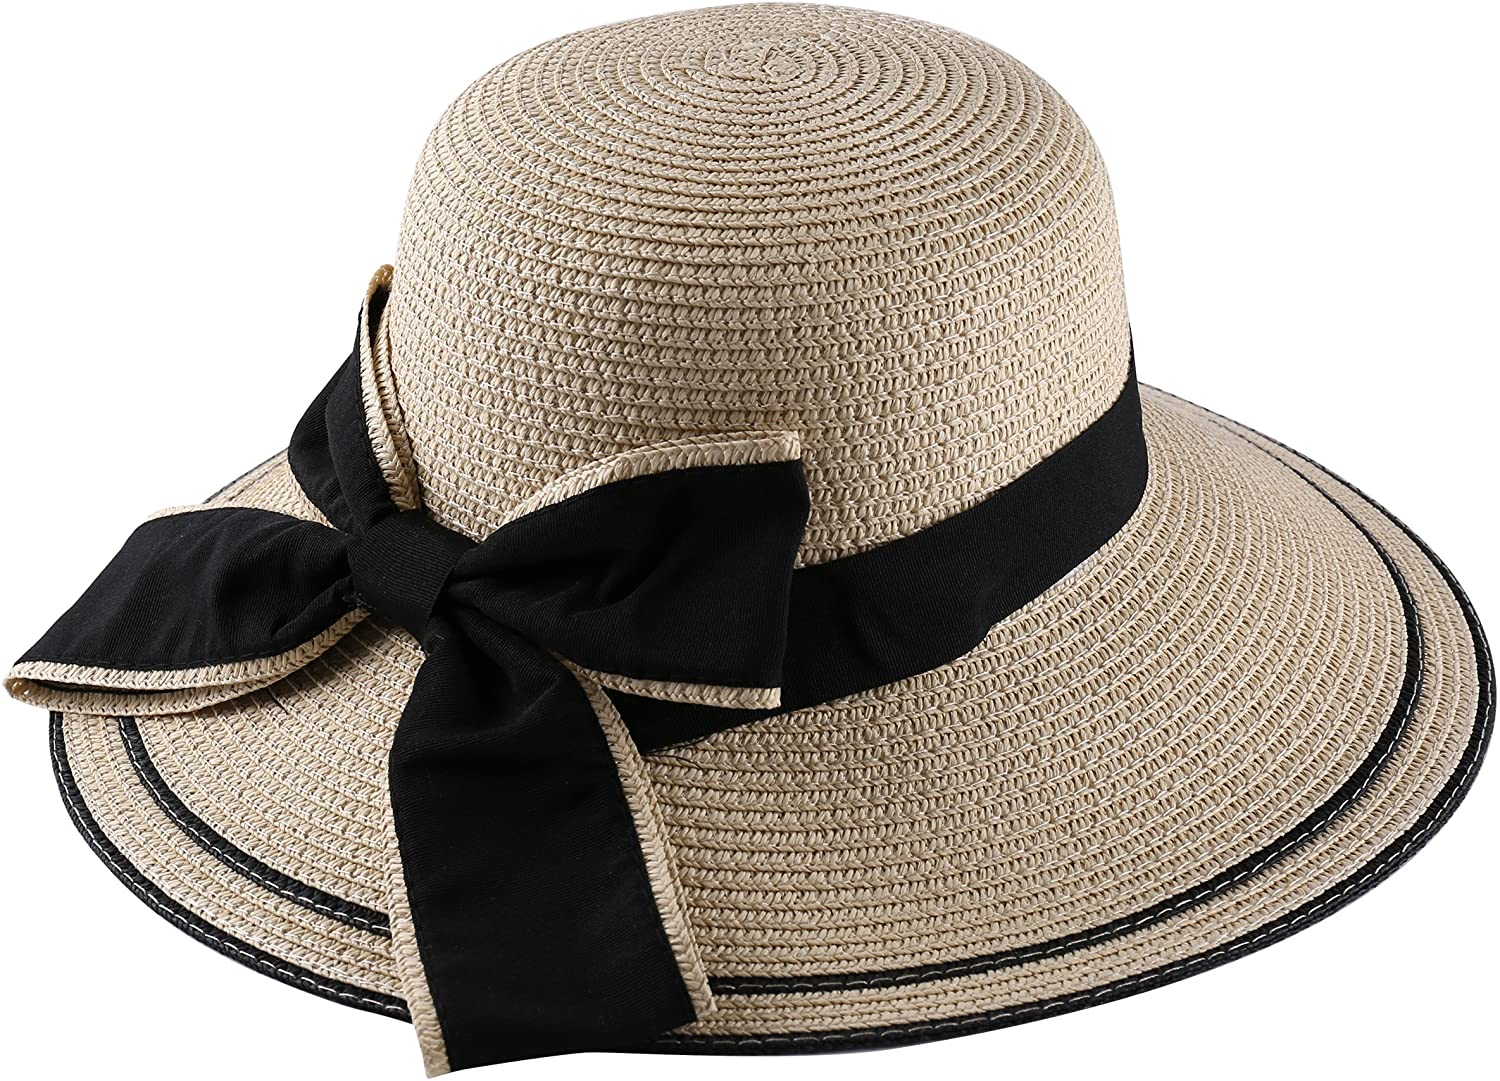 Aerusi Milan Women's Medium Size Wide Brim Sun Hat with Bow